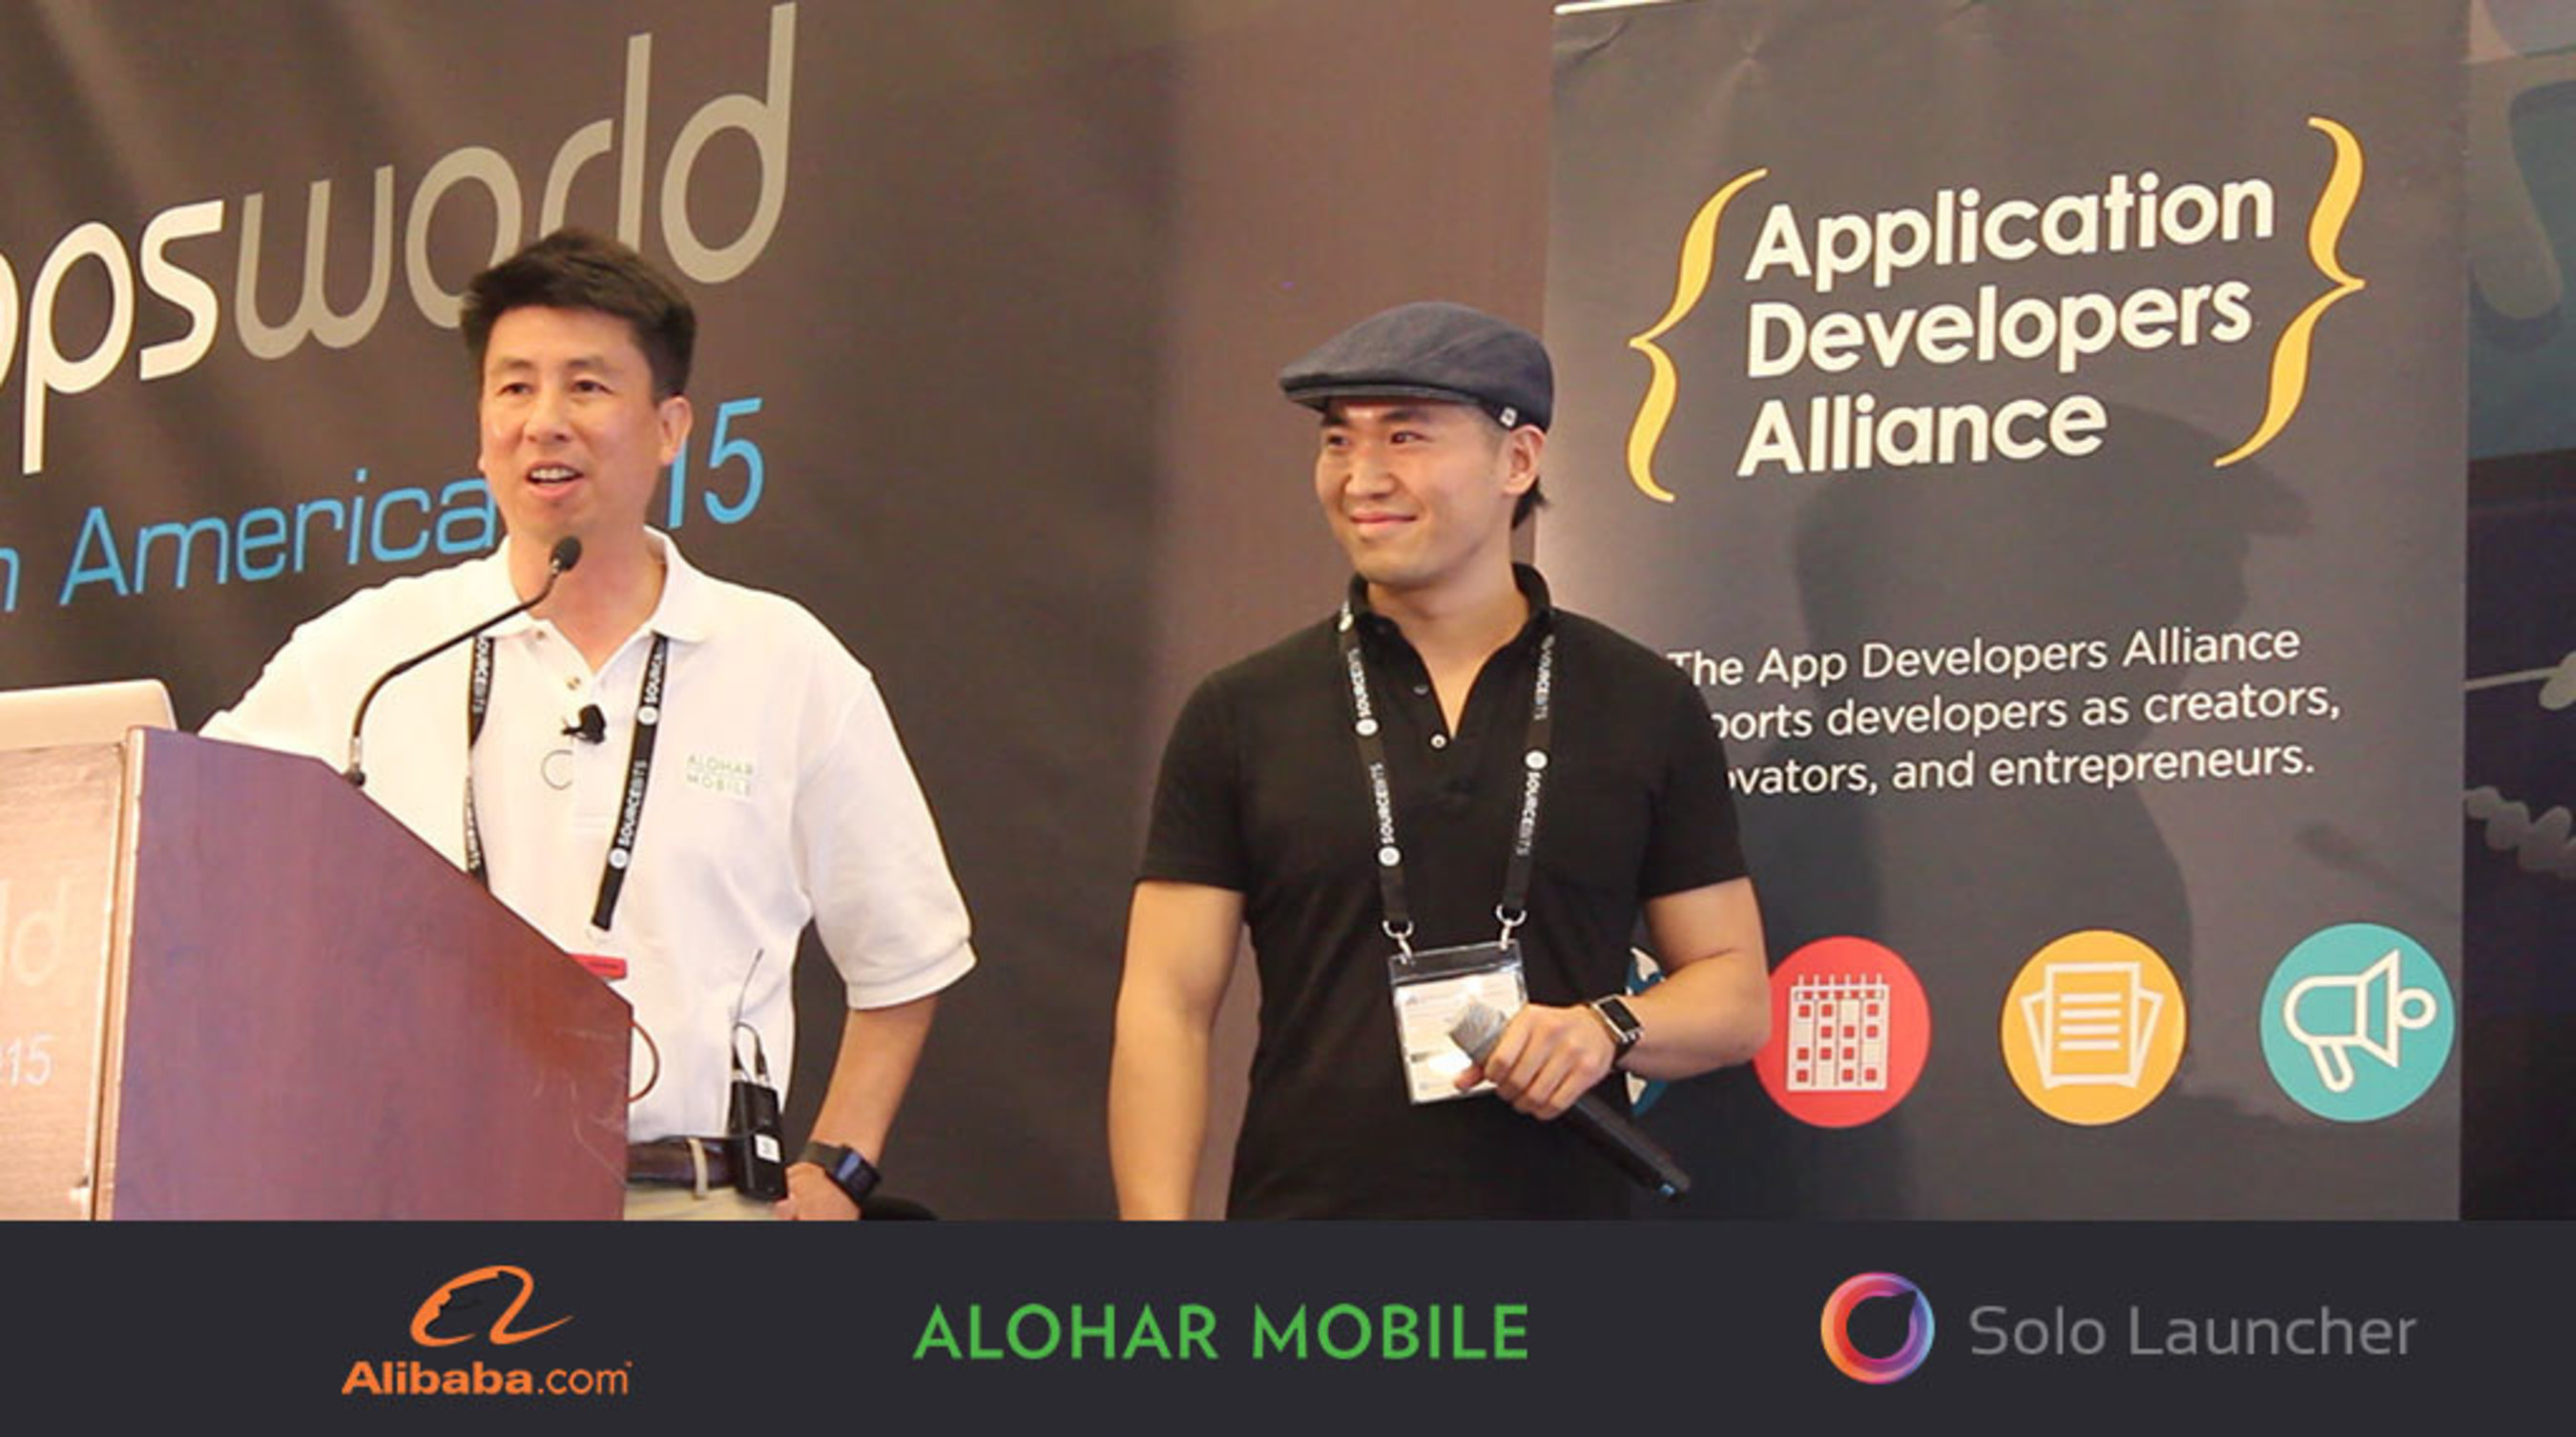 Solo Launcher and Alibaba's Alohar Mobile Build the World's First Contextually Intelligent Launcher